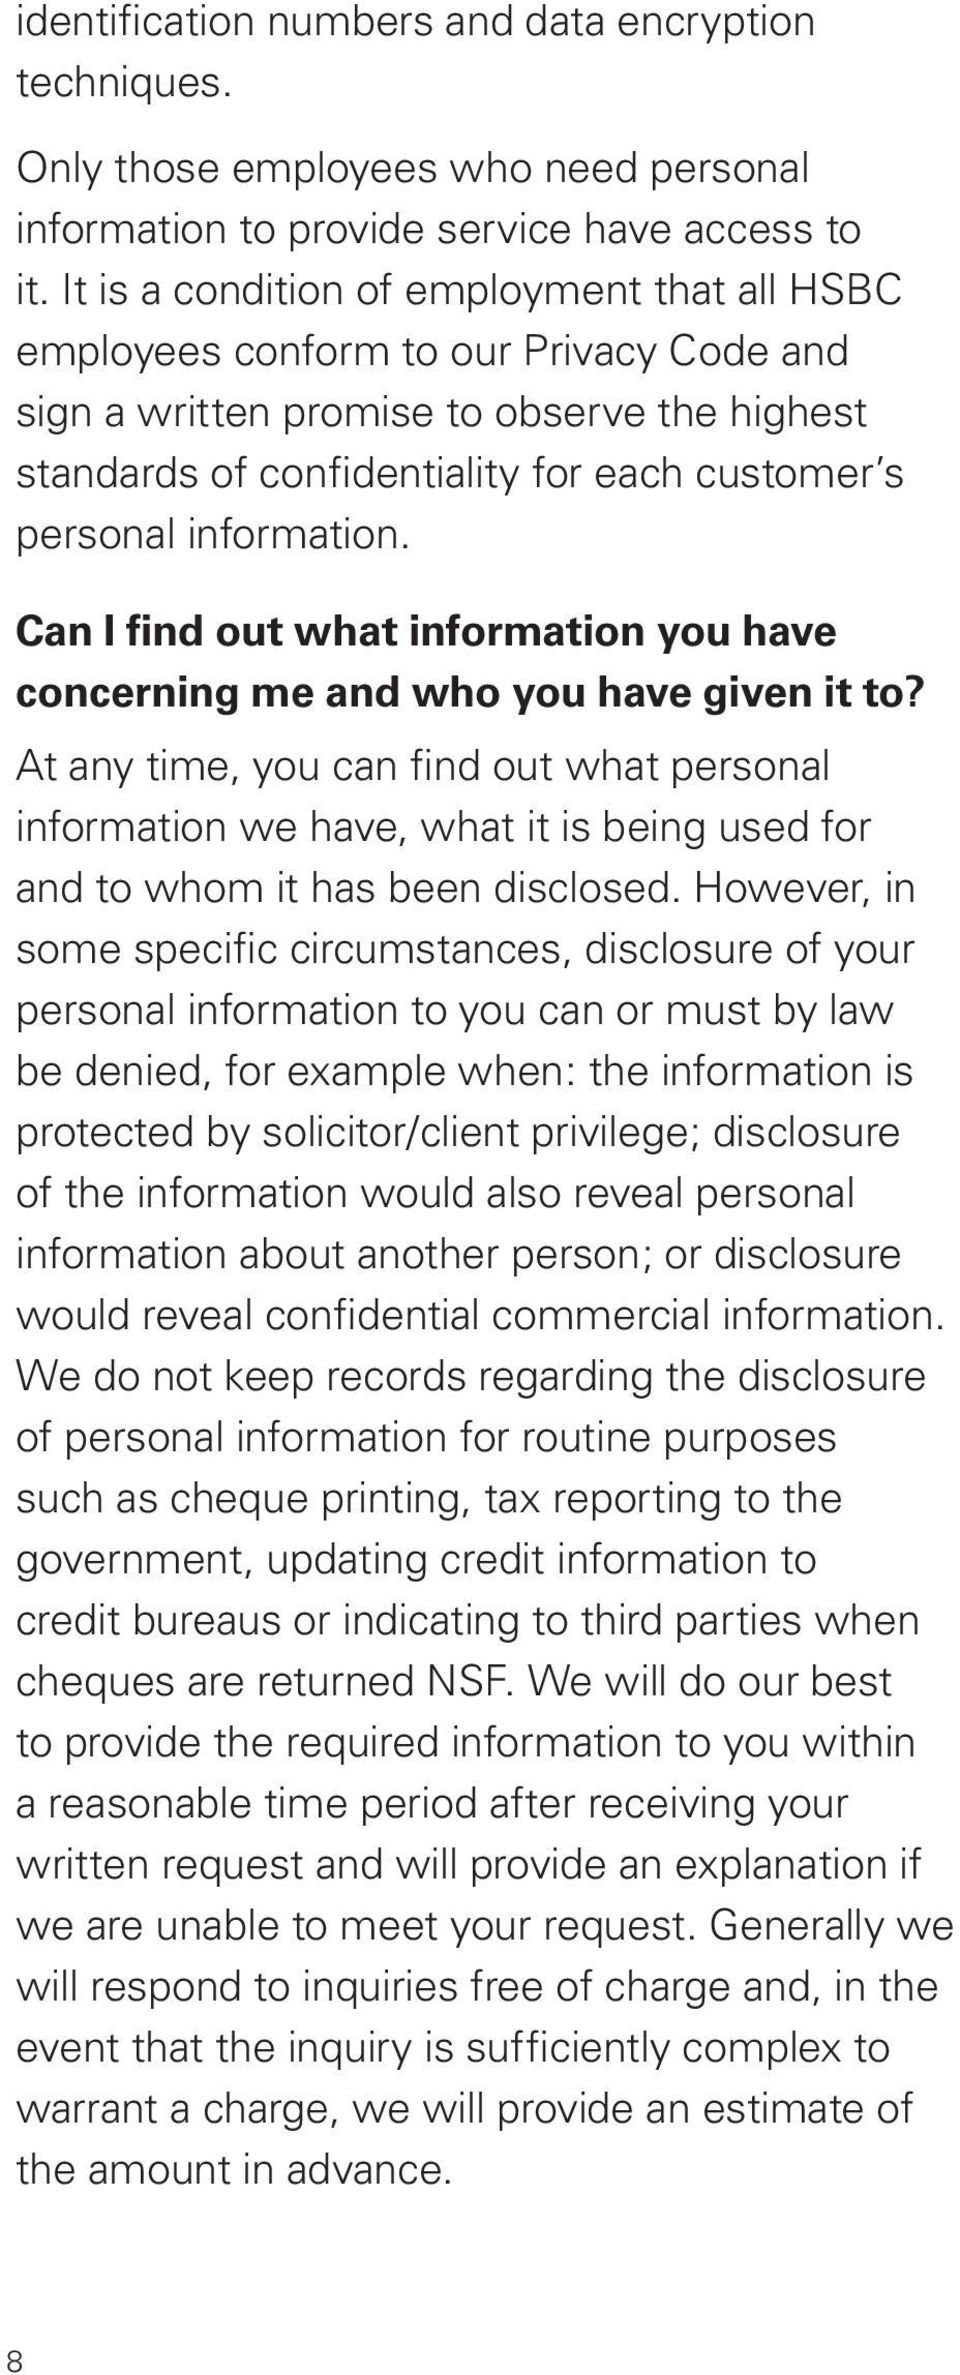 information. Can I find out what information you have concerning me and who you have given it to?